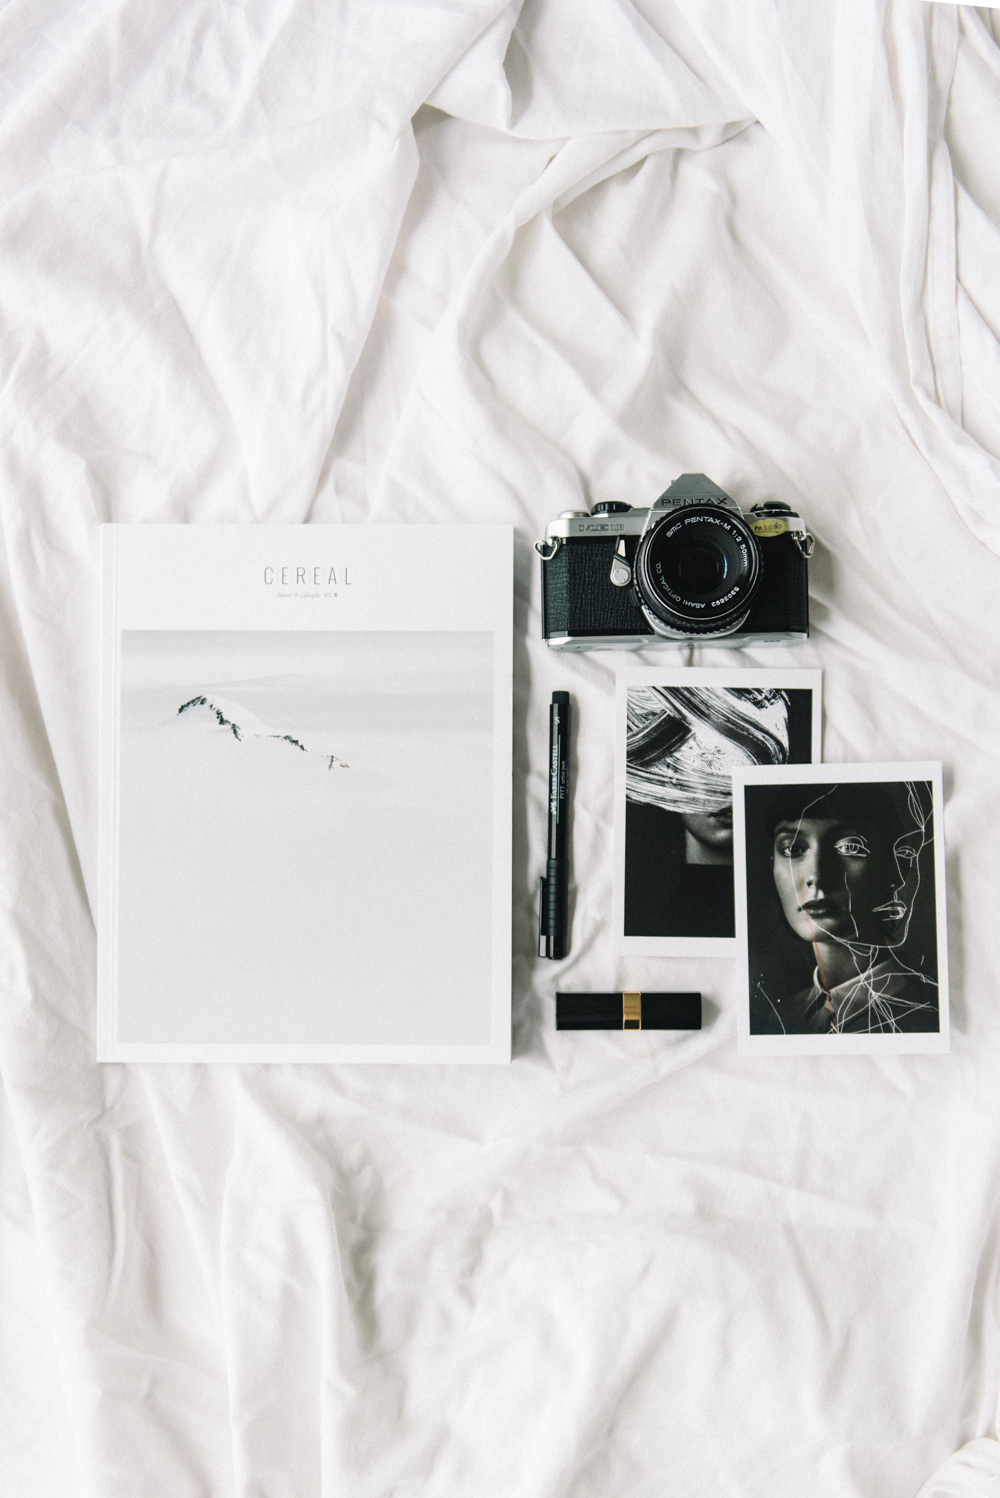 How To Shoot A Flat Lay and Product Image // www.oliviabossert.com // 12 Days Of Christmas Series // flat lay, product photography, small business tips, photography tips, instagram tips, social media tips